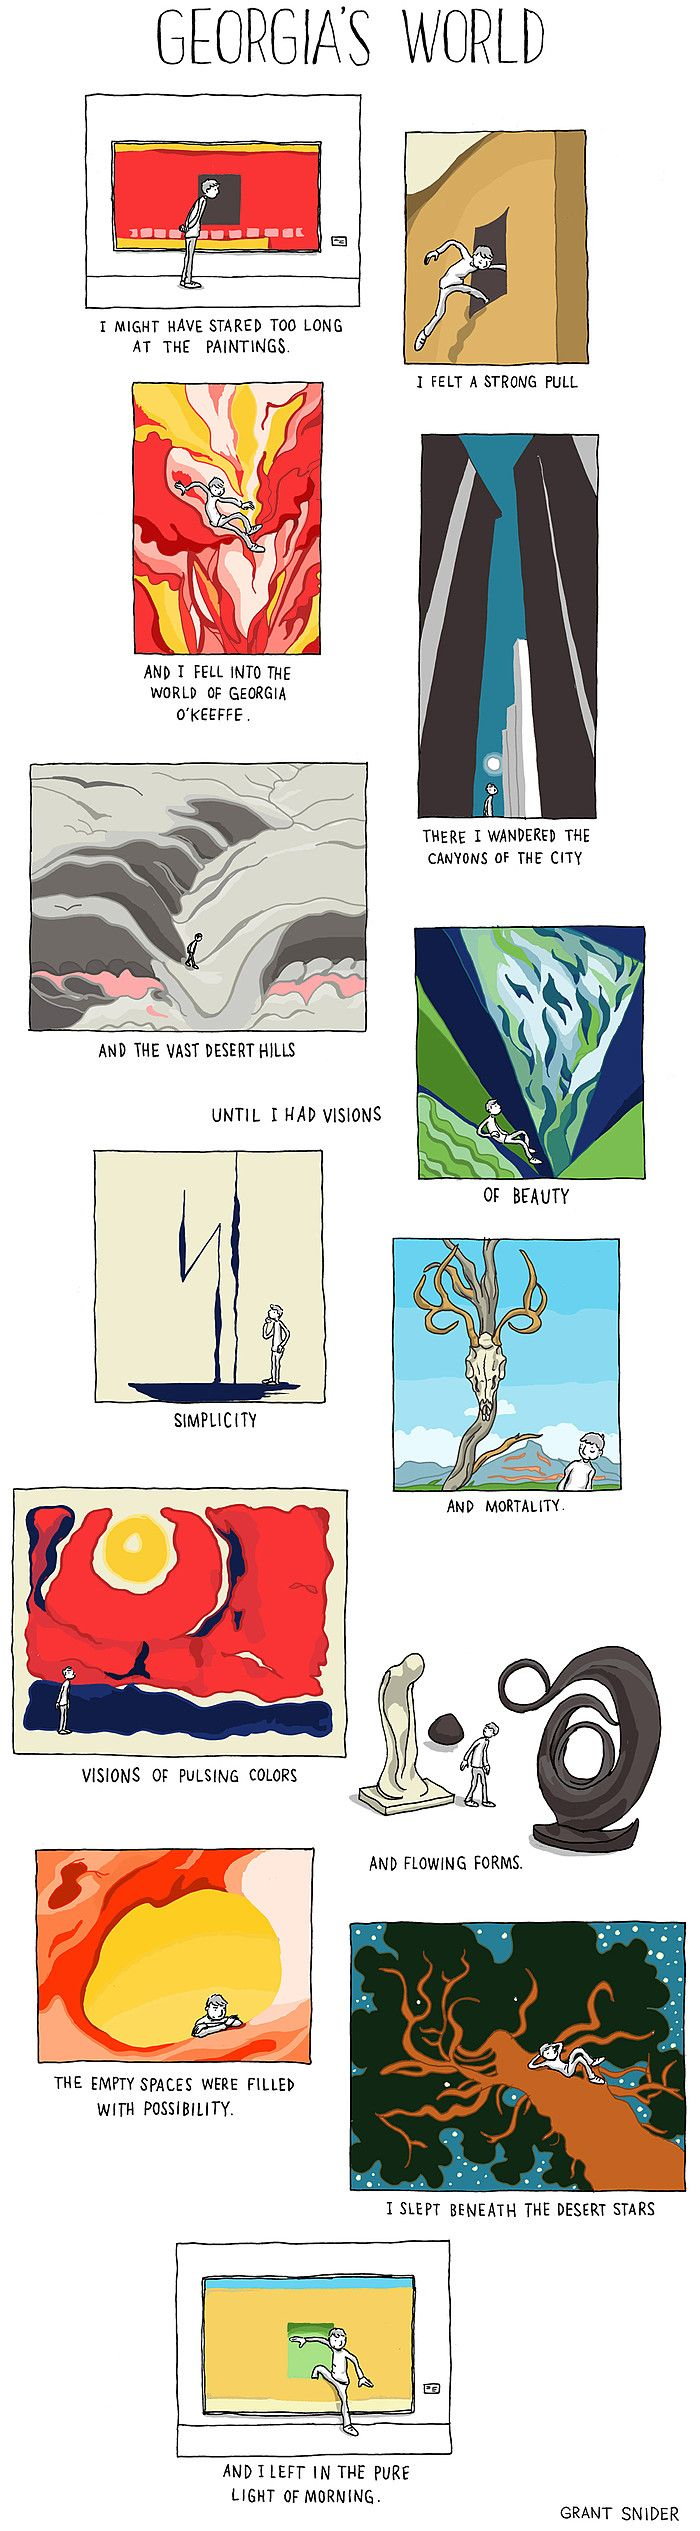 Grant Snider in Who Needs Art? Georgia's World : A journey through the paintings of Georgia O'Keeffe